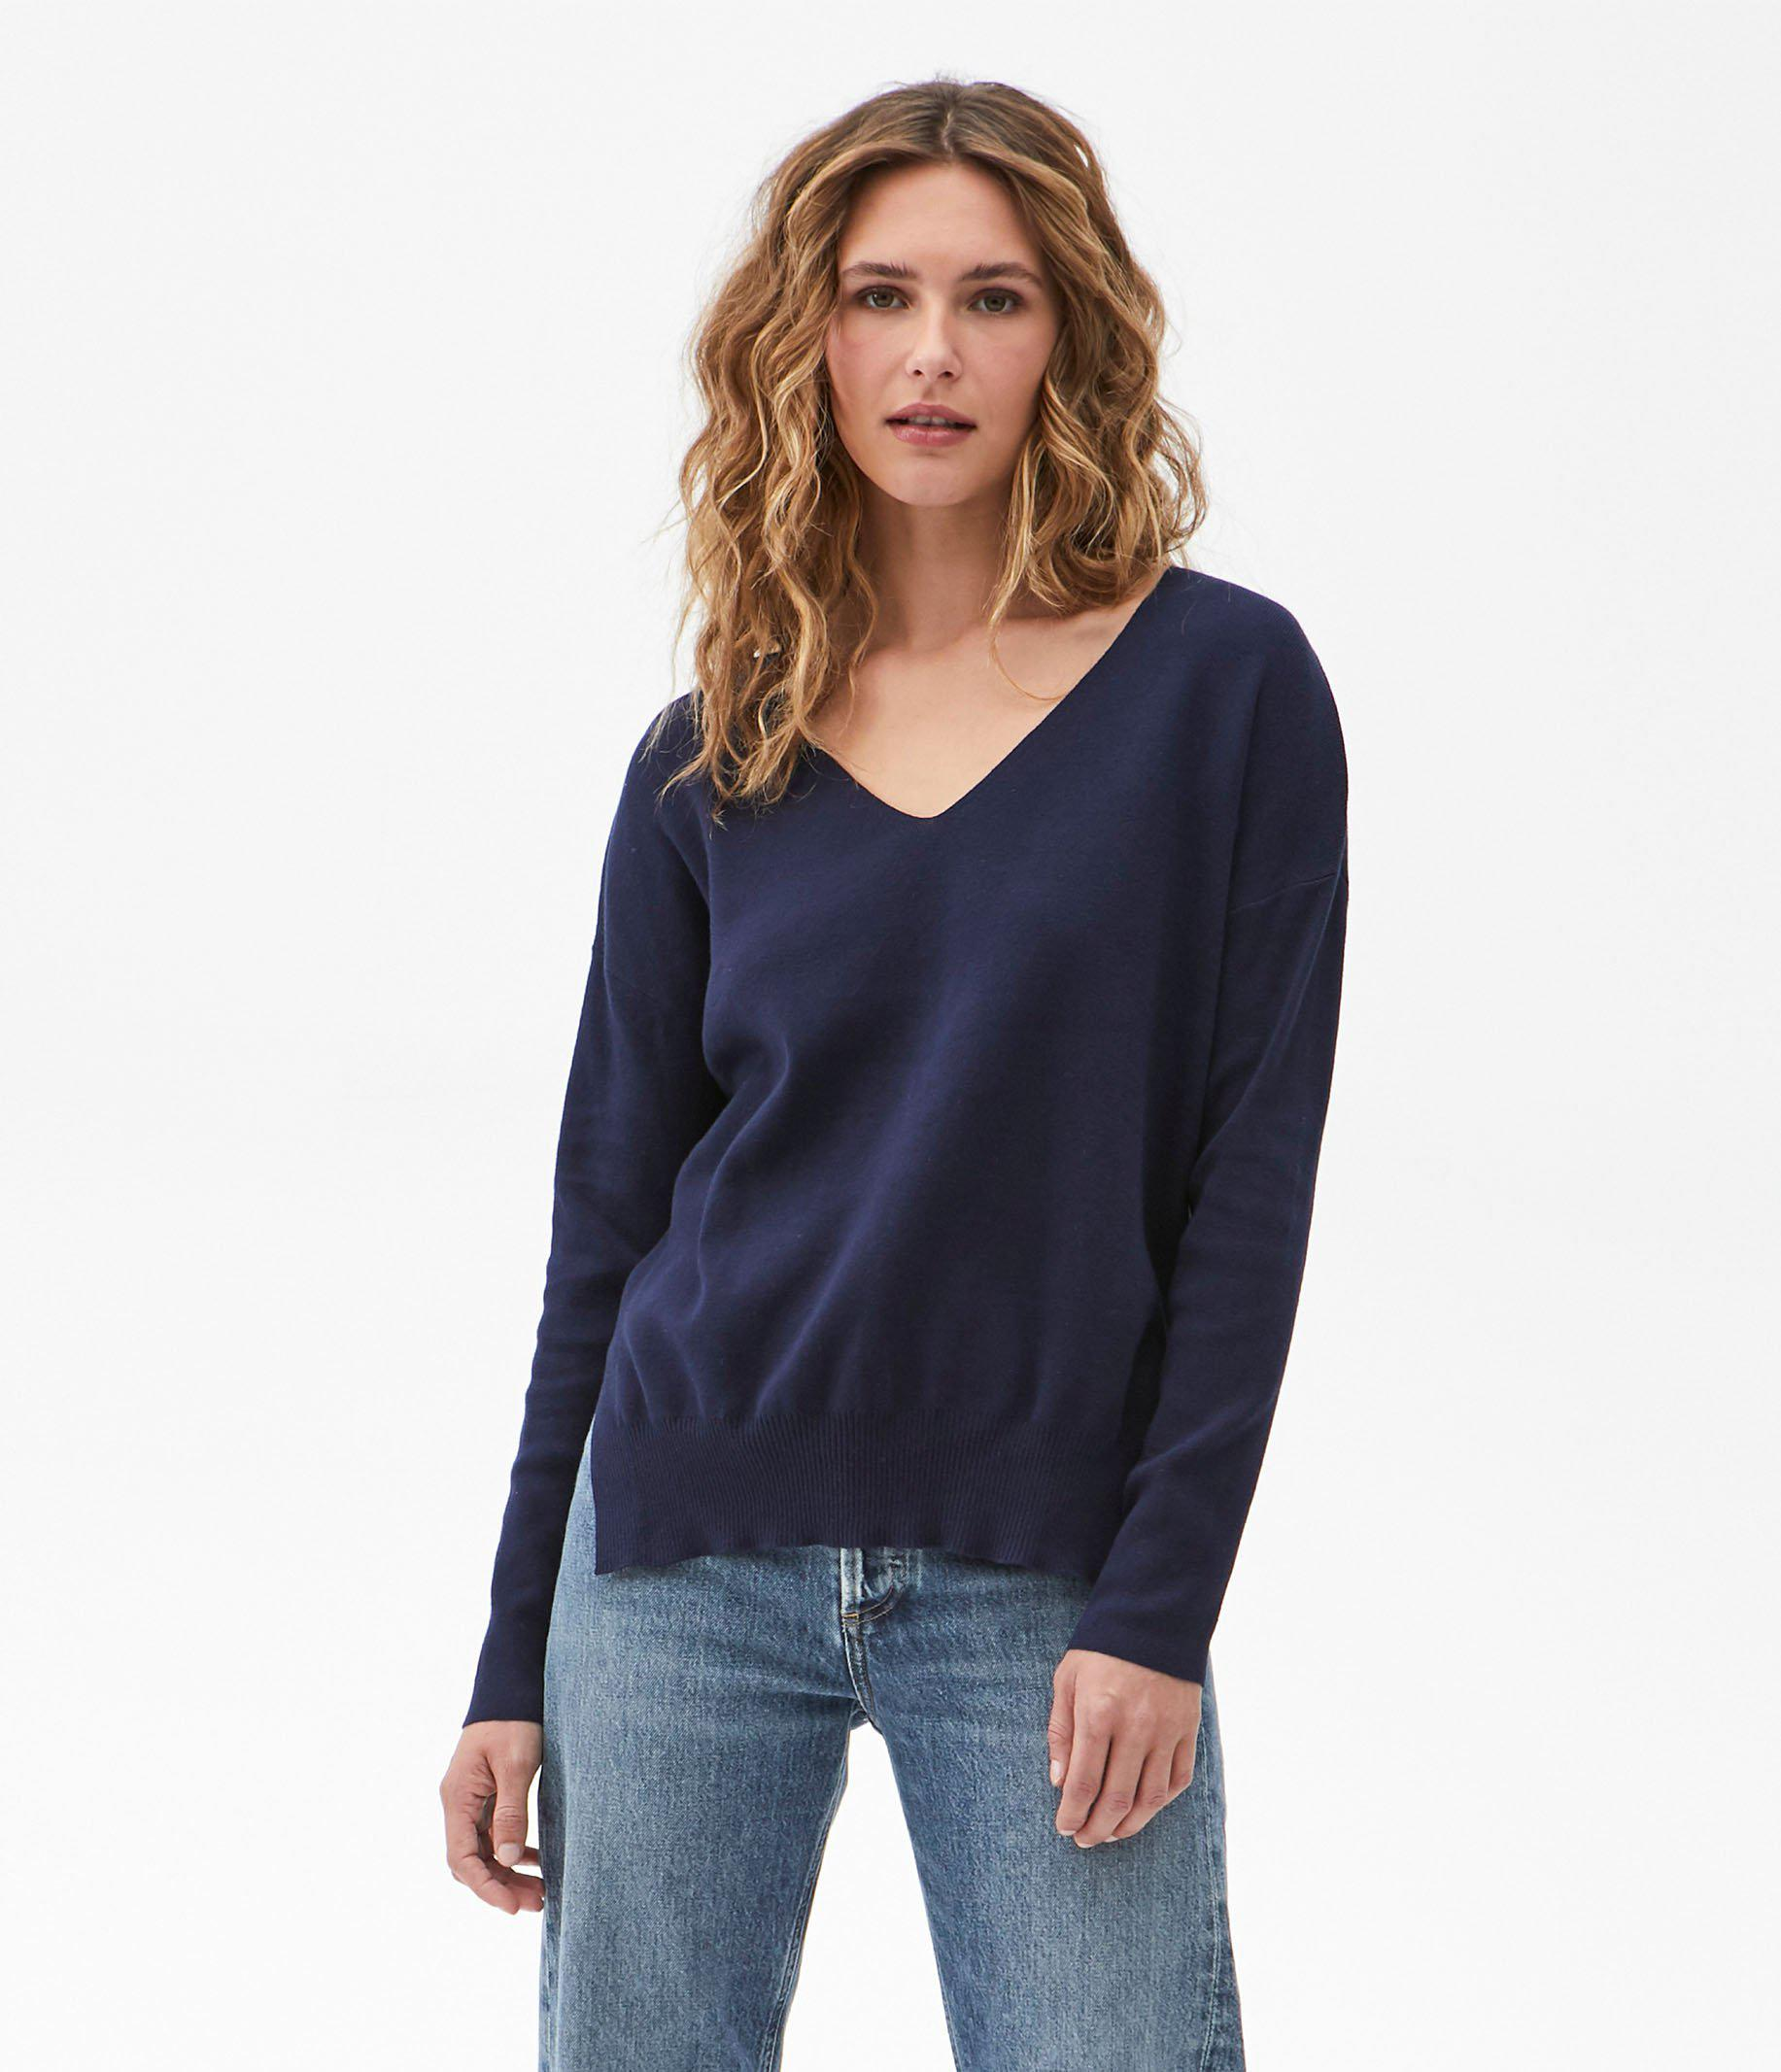 Ivory Pullover Sweater